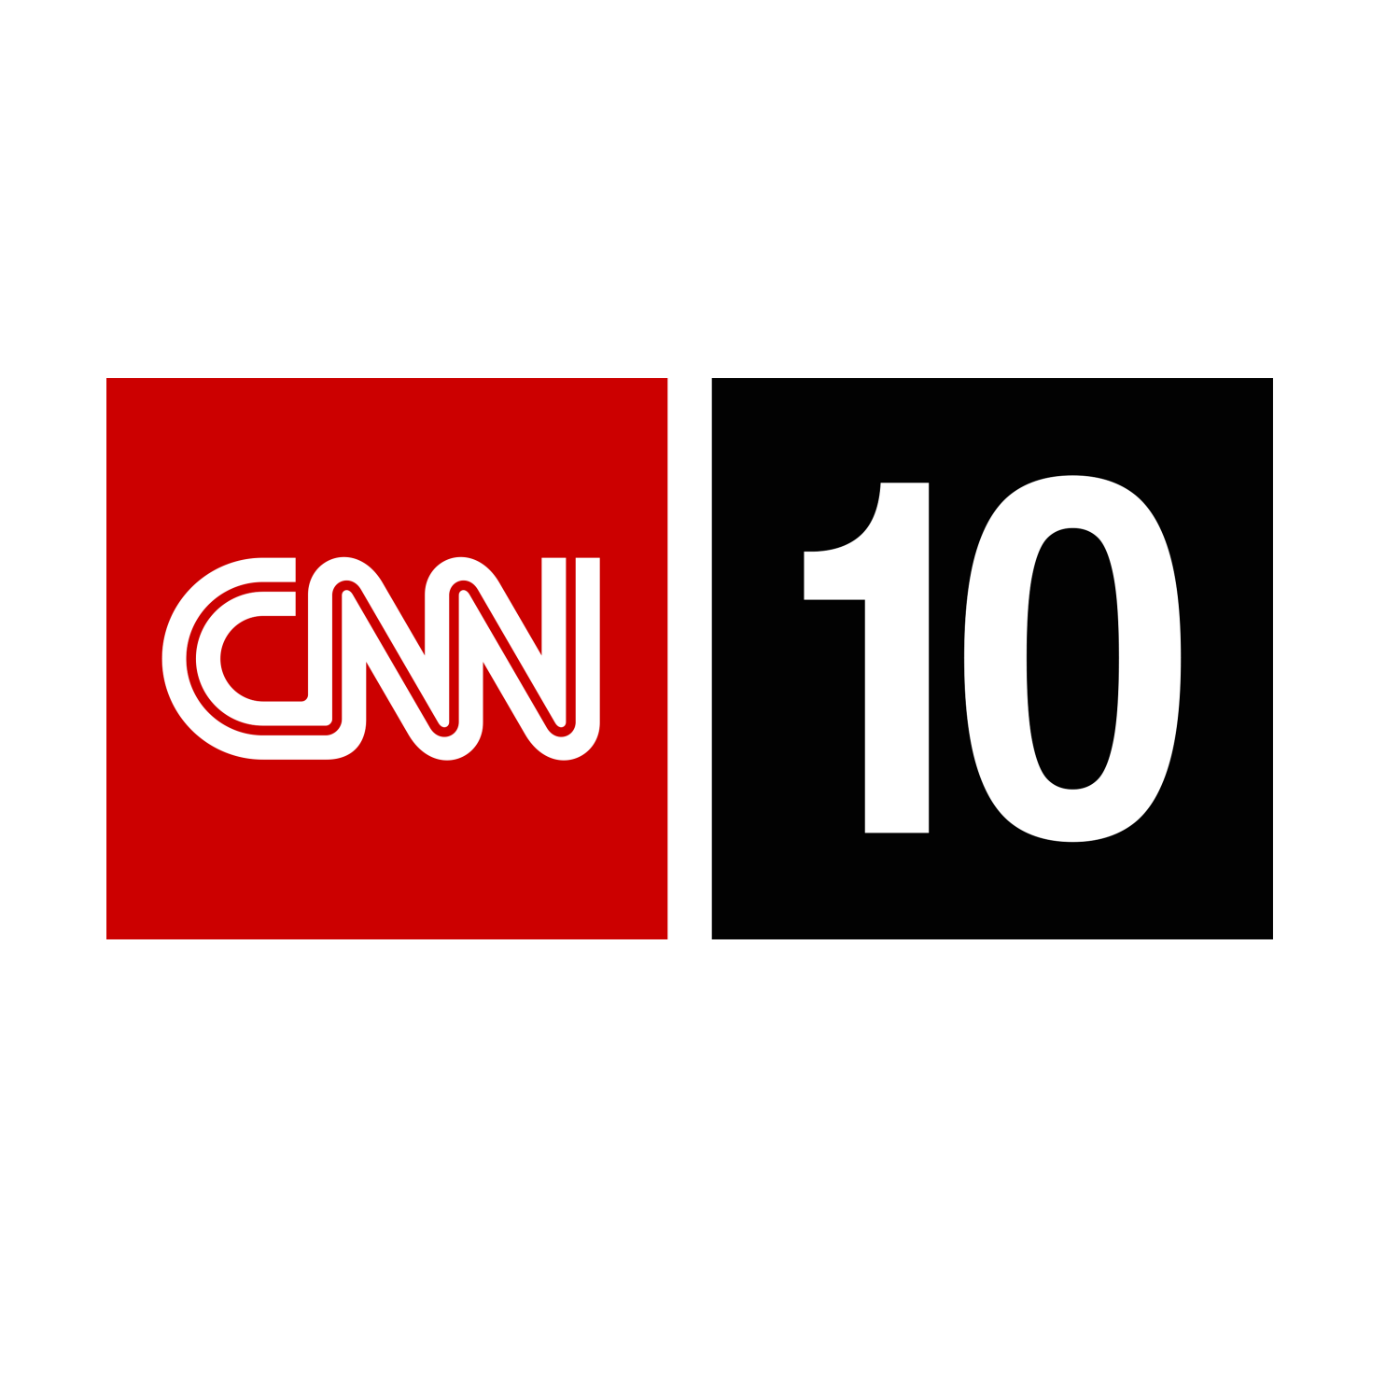 CNN Student News - October 4, 2012